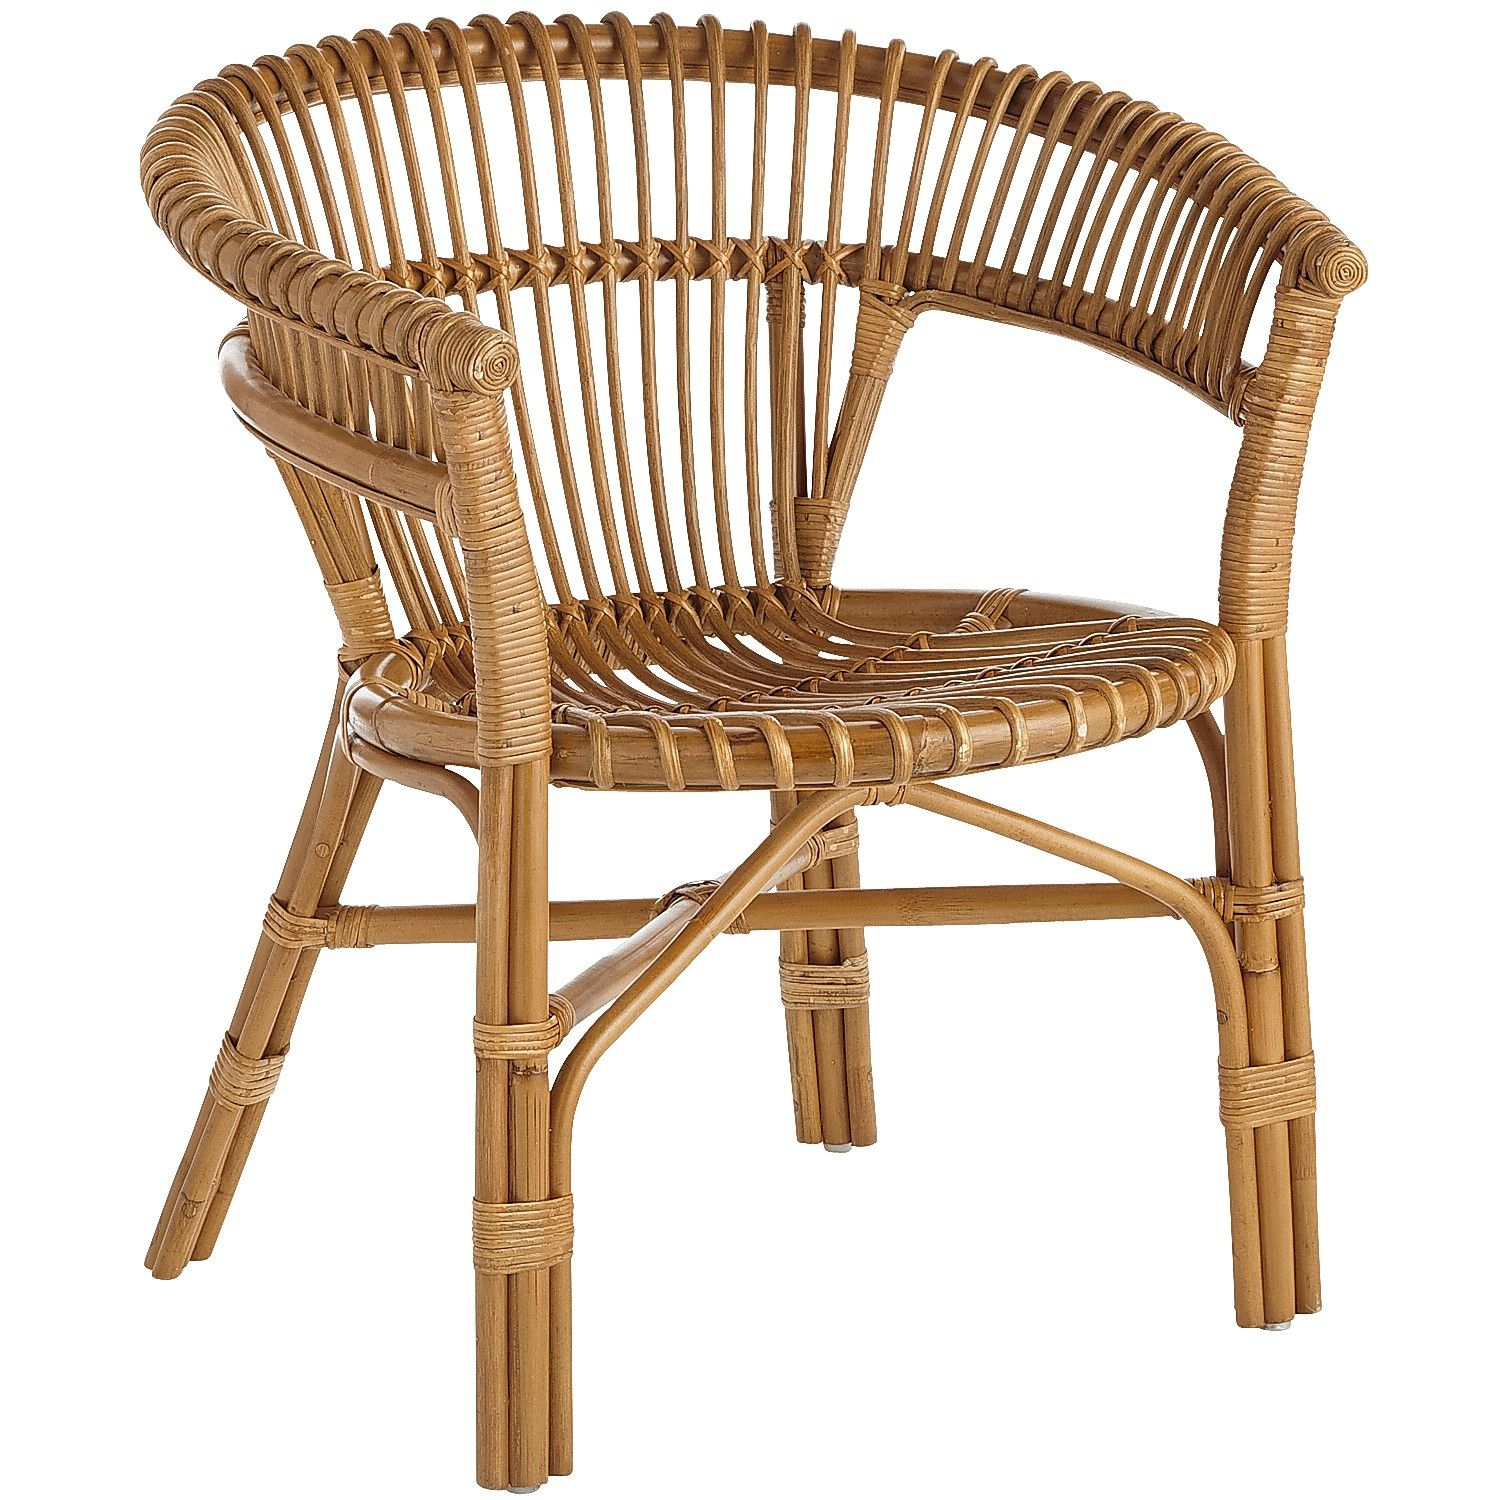 Wicker Rattan Chair Furniture Unique Rattan Chair For Indoor Or Outdoor